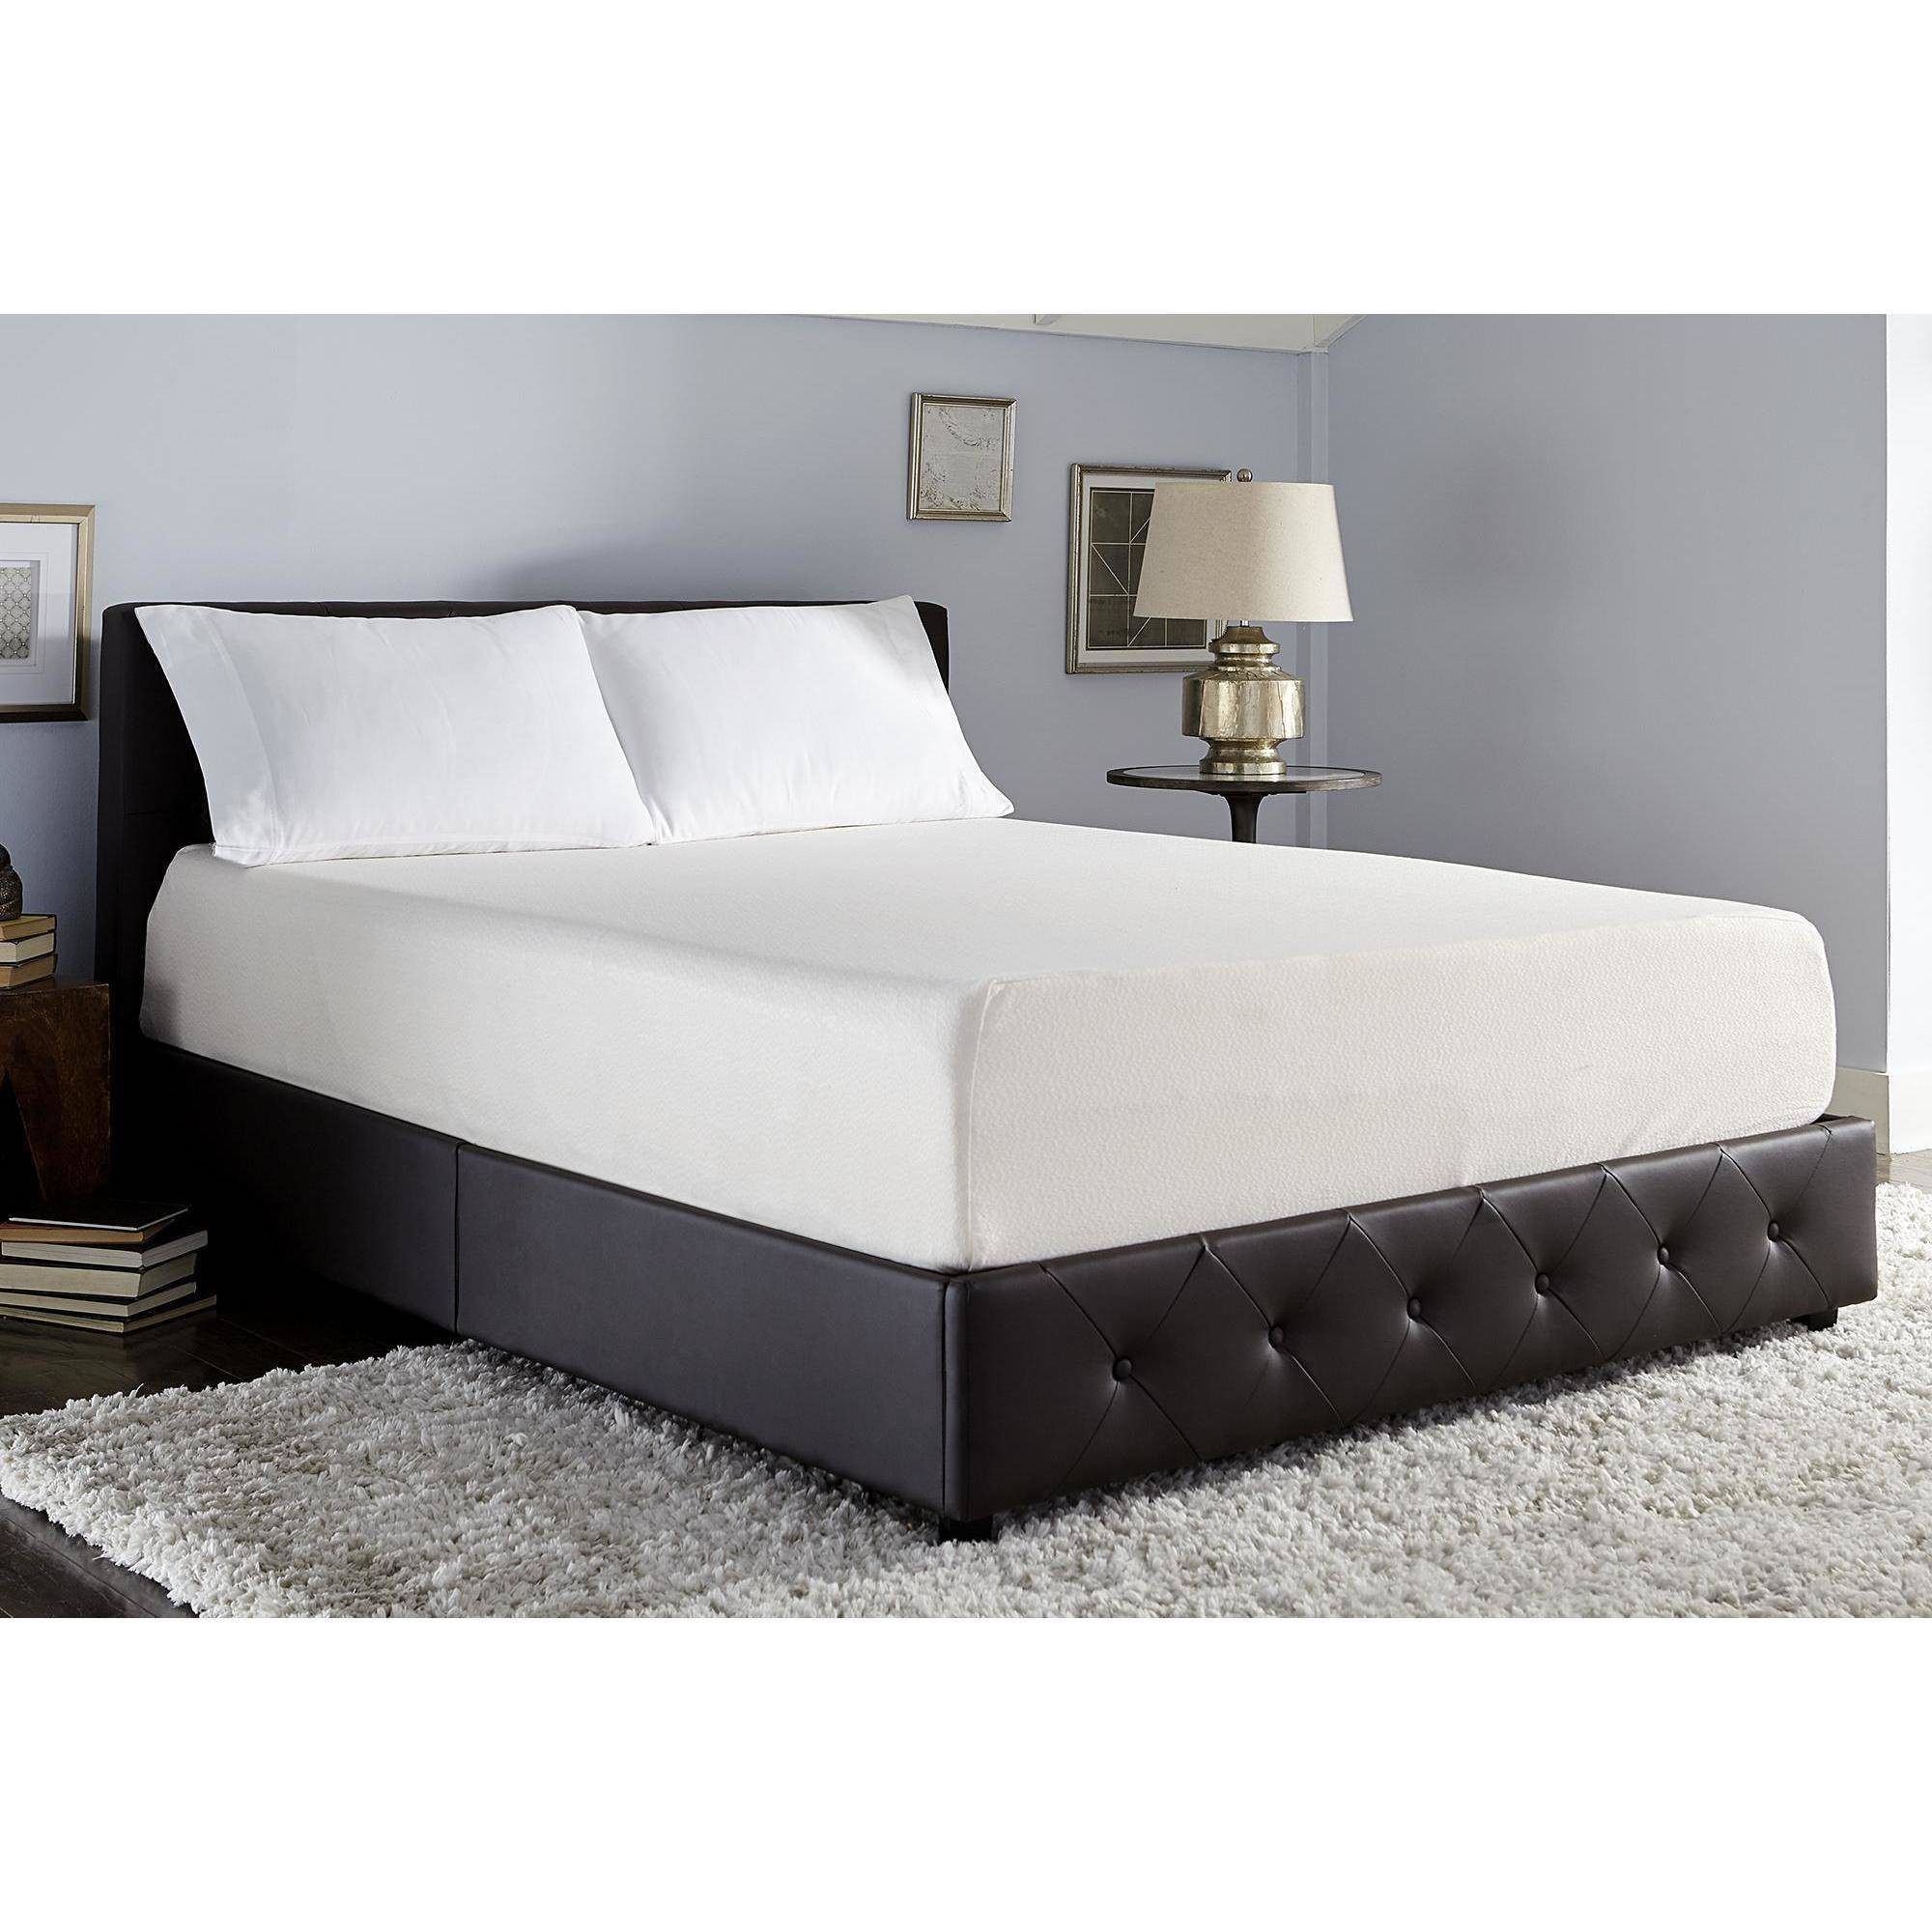 "WESTON QUEEN SIZE 8"" MEMORY FOAM"